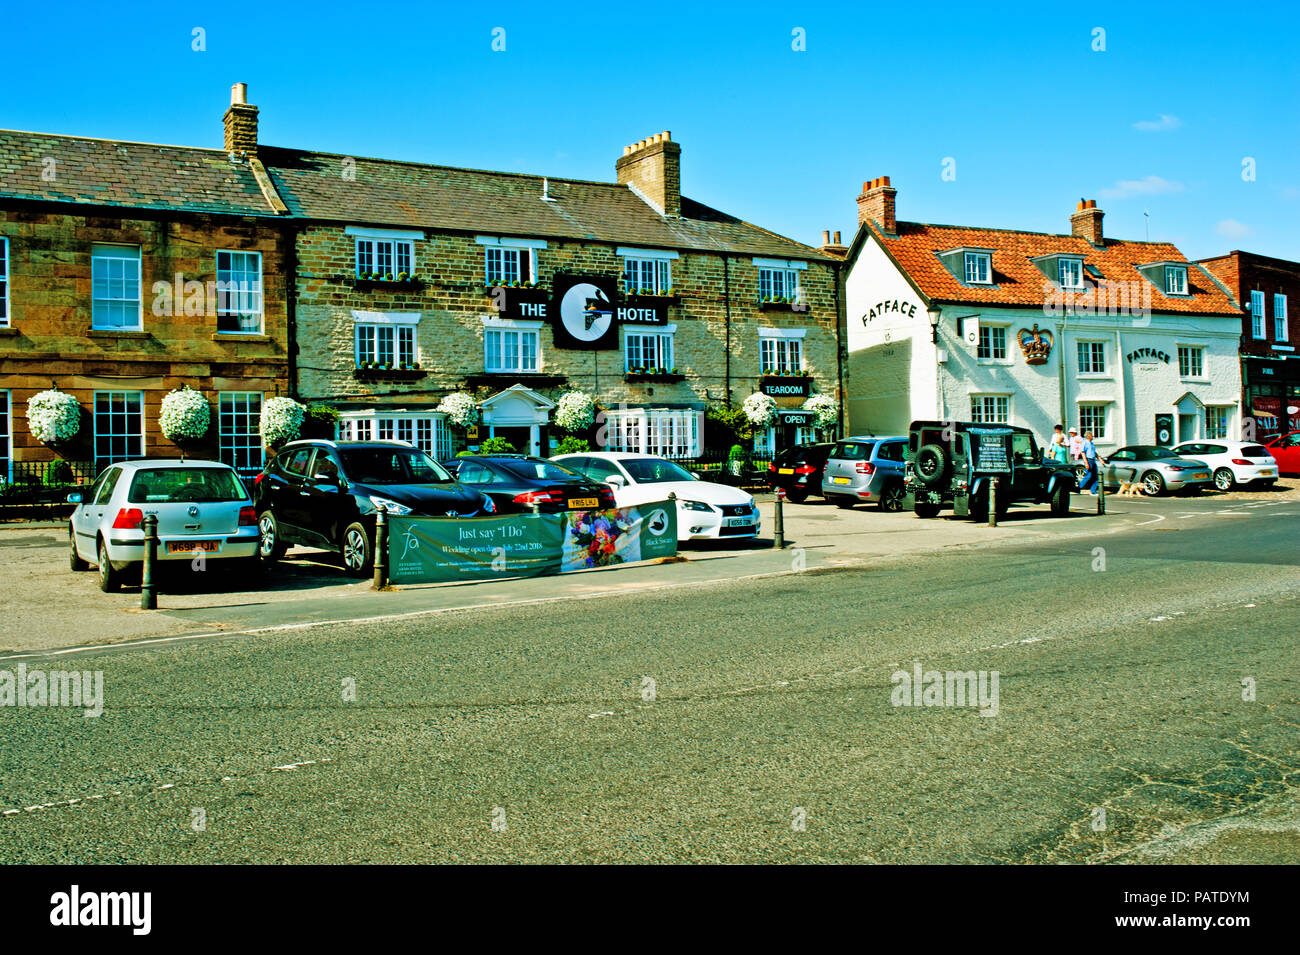 Swan Hotel and Fat face clothes shop, Helmsley, North Yorkshire, England - Stock Image